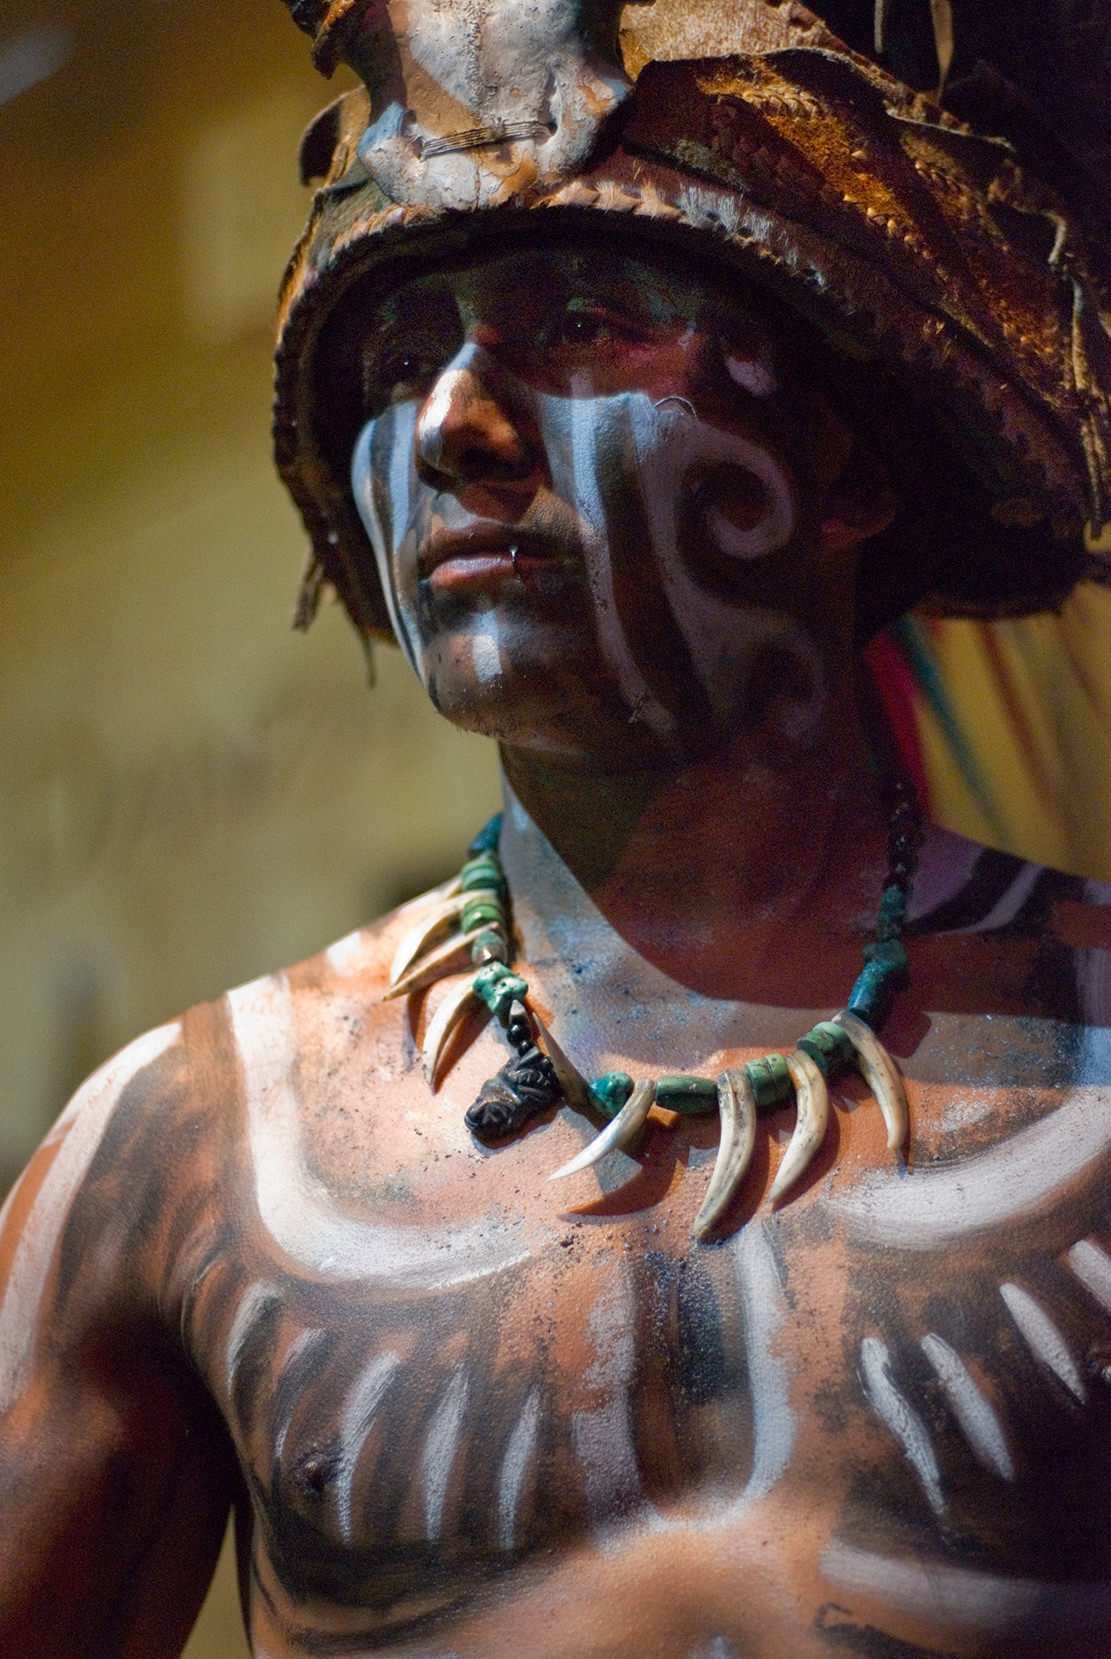 wojtek-jakubiec-photographer-montreal-mayan-mexico-documentary-Portrait-of-mayan-man-event-PSD.jpg